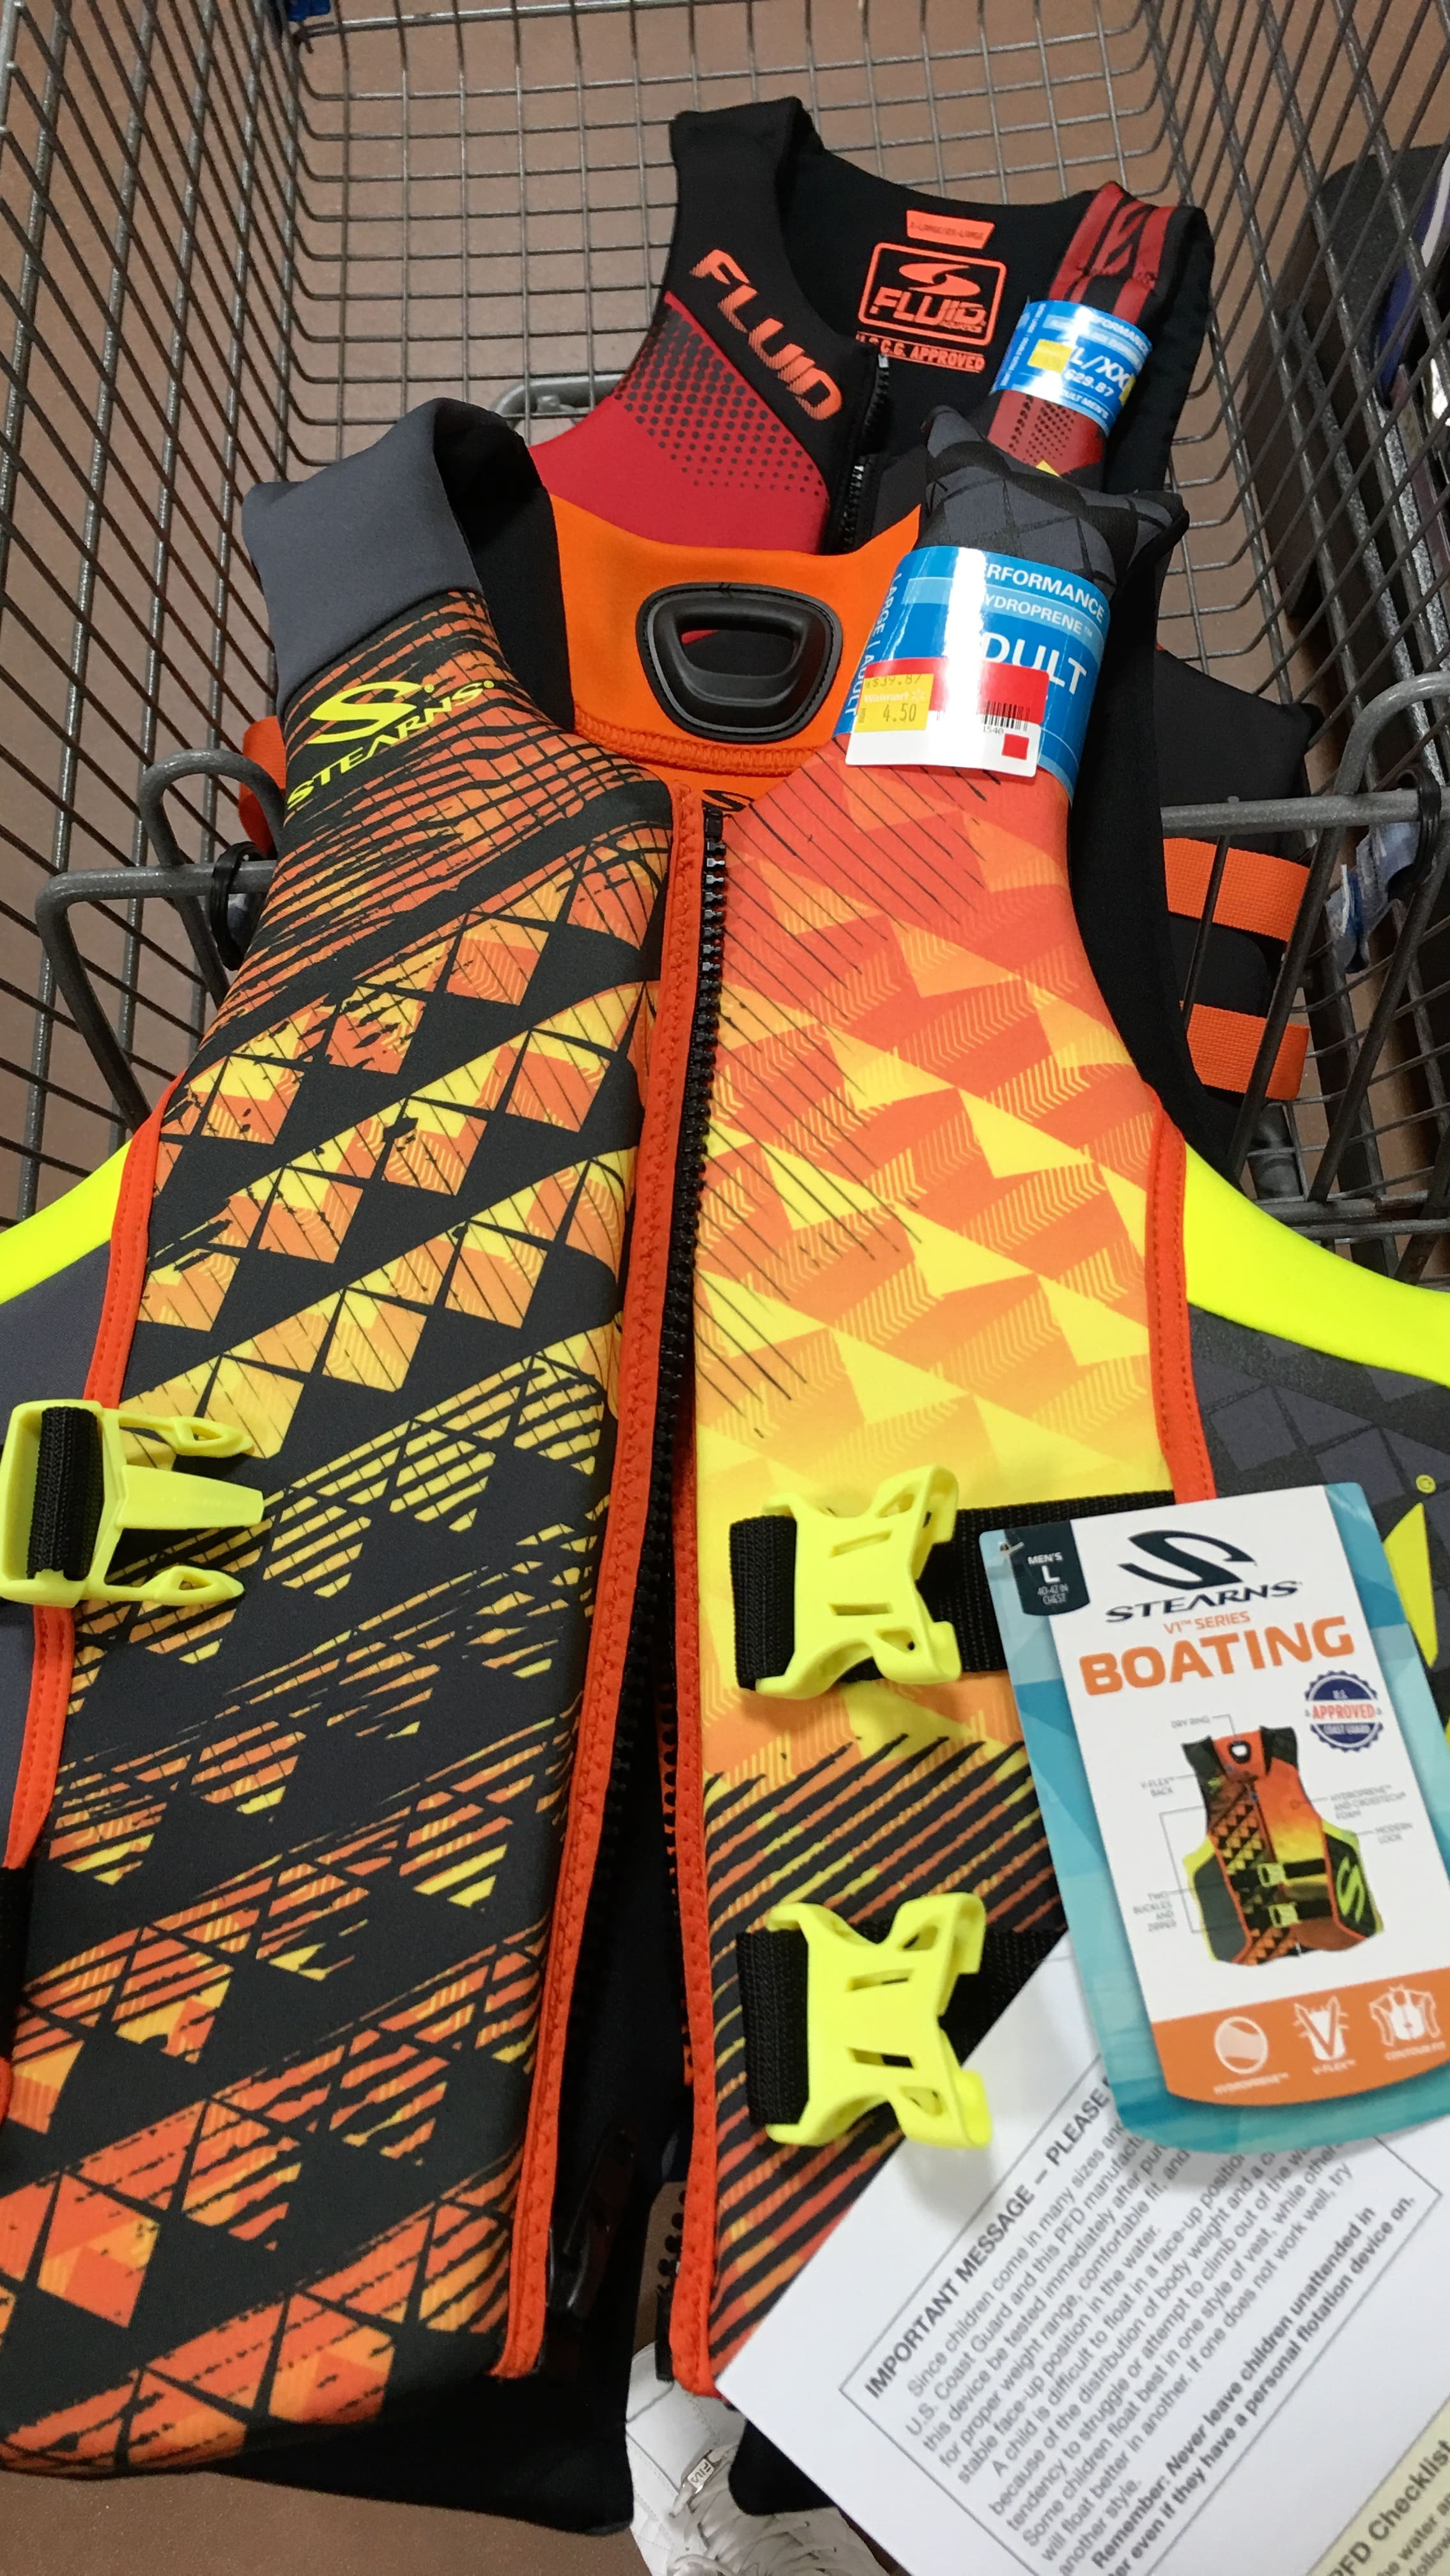 Life jackets (multiple brands) on deep clearance up to 90% off at Walmart B&M YMMV